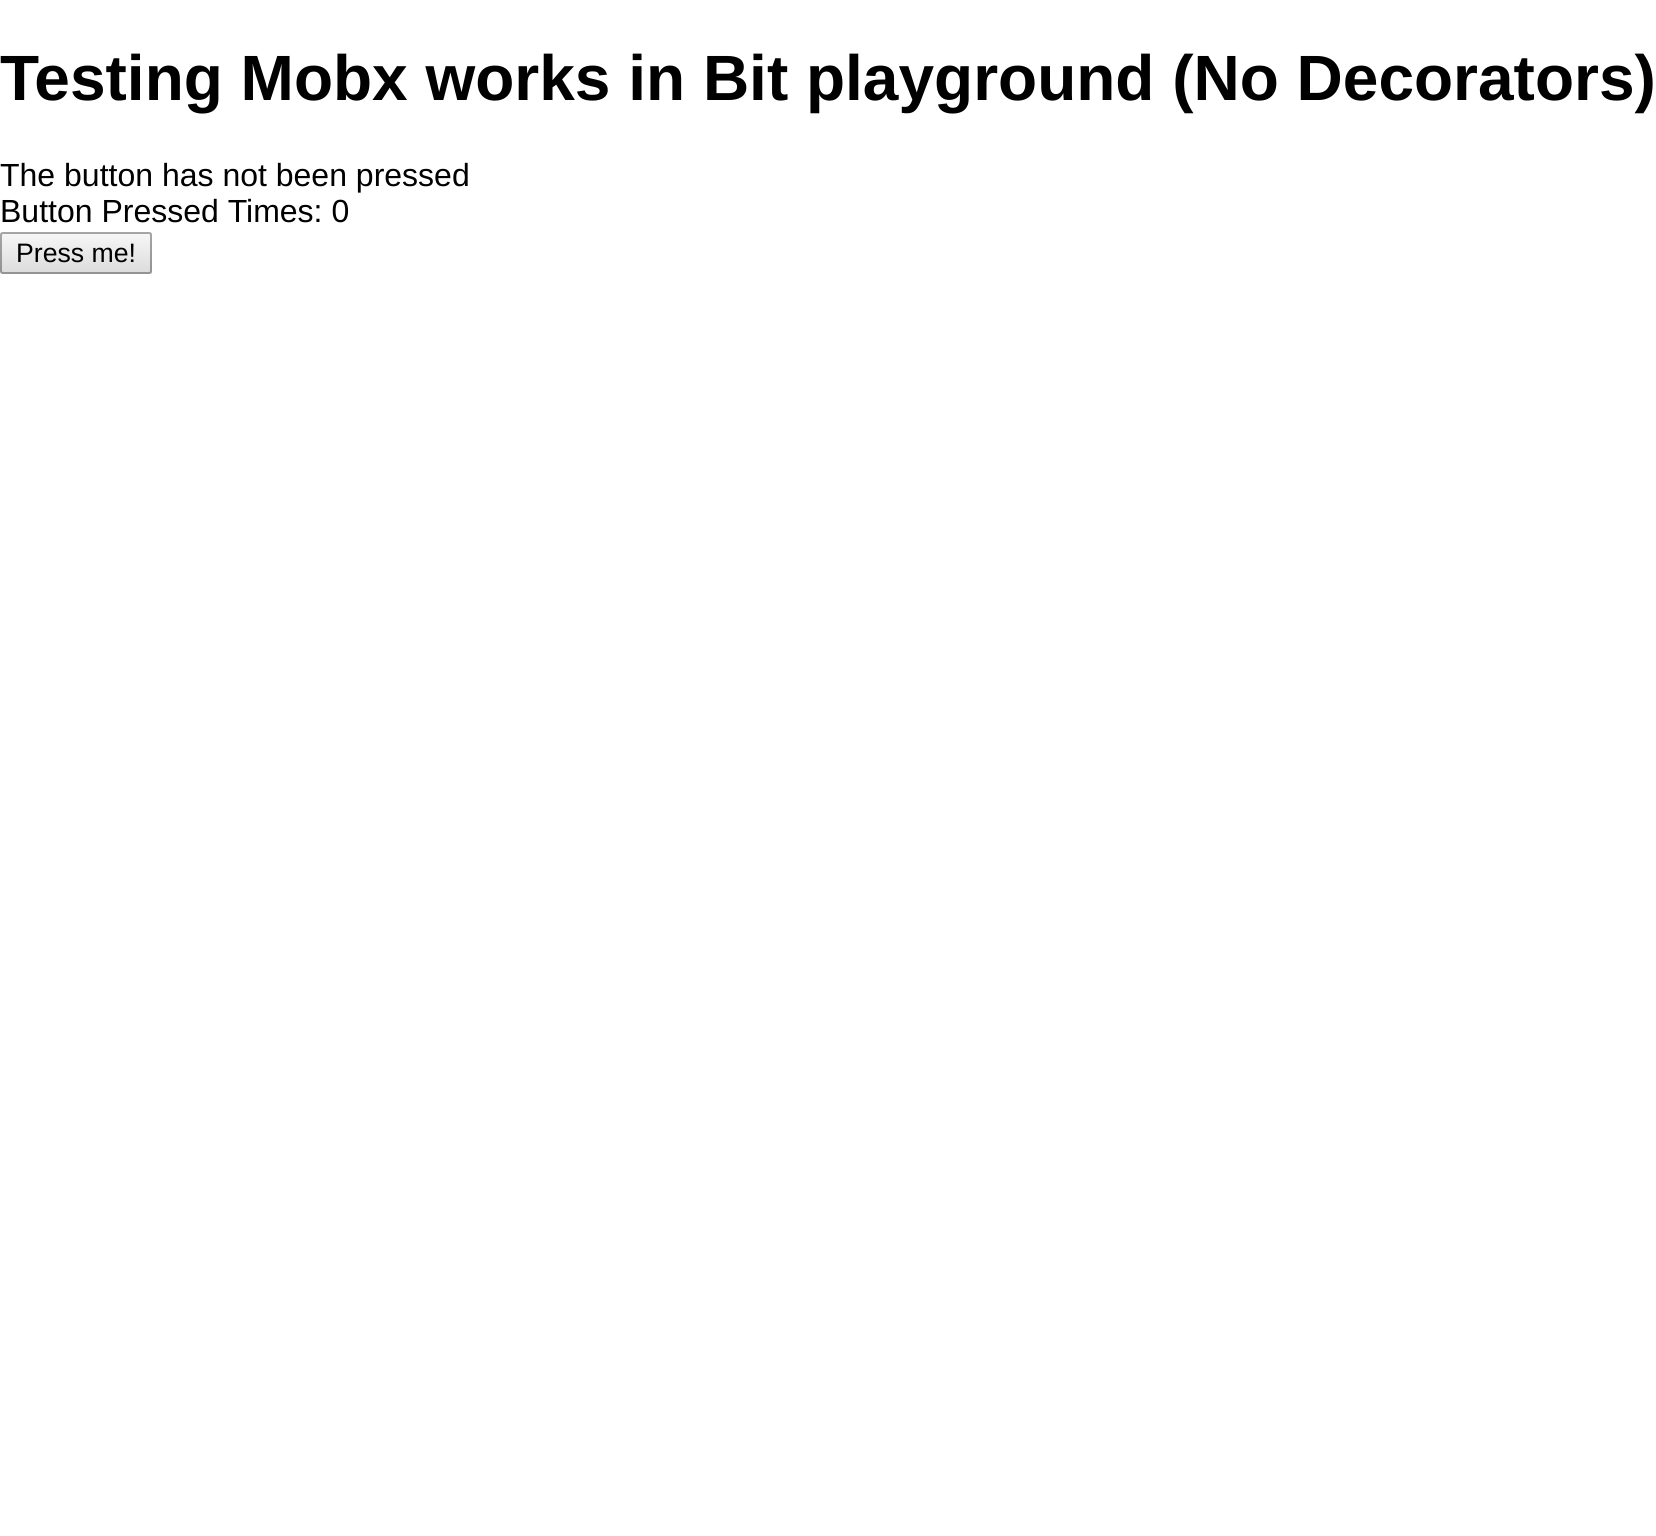 mobx/test-no-decorator - tests · Bit